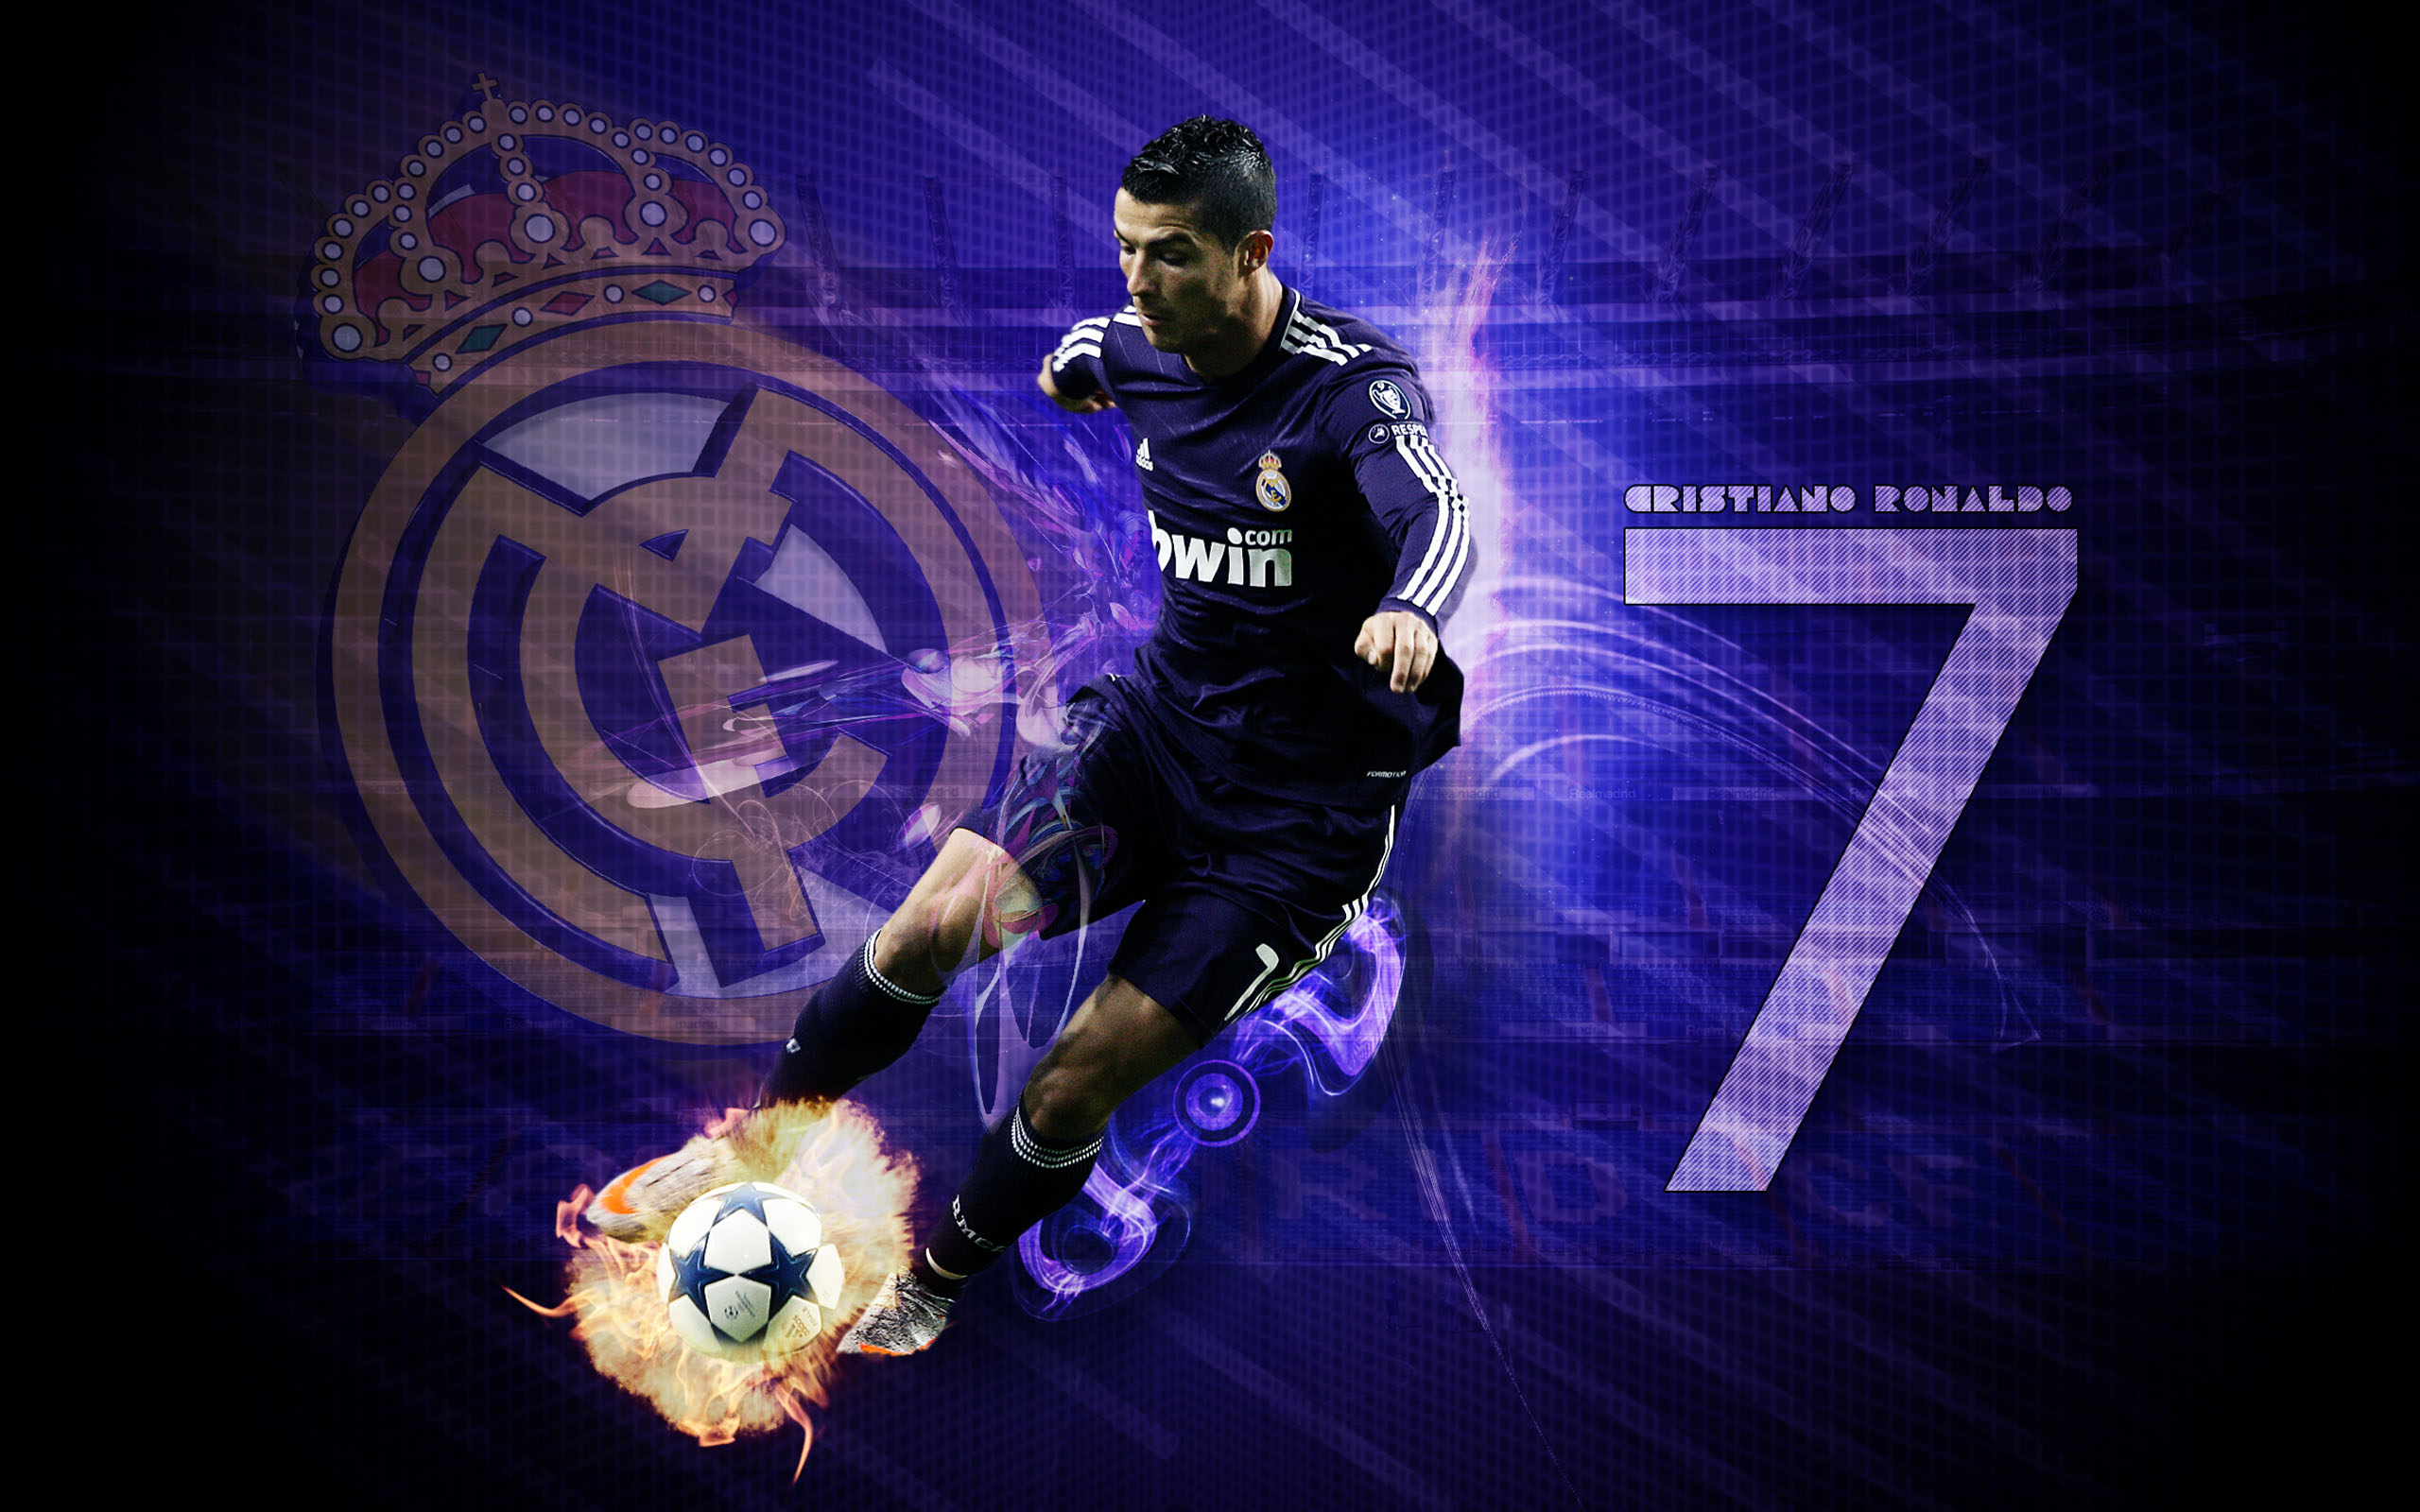 Real Madrid: Real Madrid Wallpapers